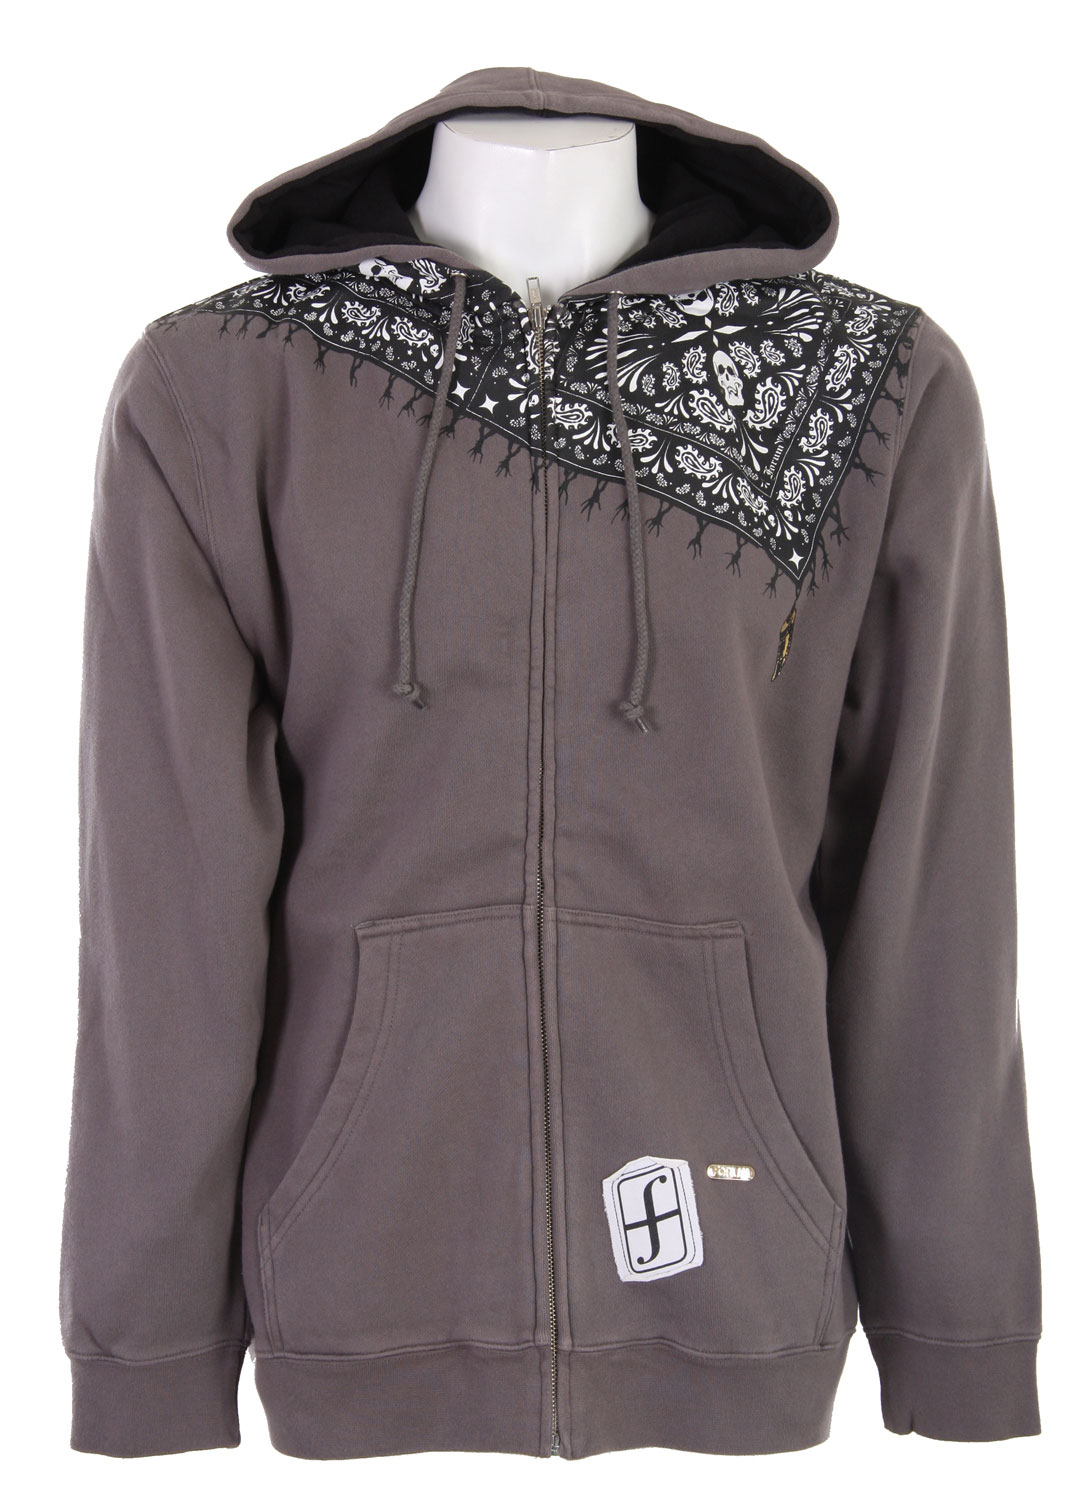 Entertainment The Forum Seeker Hoodie is a very chic hoodie. Well, it's more fancy than chic but nonetheless this is a rocking hoodie. It is made out of 80% cotton and 20% polyester. This means that you will be very comfortable while wearing this hoodie and will also be warm and protected from the cold or rain. It is a slim fit hoodie for those who don't like big or baggy hoodies. It also sports a fancy design around the collar which will get people curious when they see you walking around in it. It also sports the Forum logo and contains two big pockets to put your hands in or anything you have on you like a cellphone or wallet. This is a really cheap hoodie as well.Key Features of the Forum Seeker Hoodie Grey: 80% Cotton/20% Polyester - Slim Fit - $13.95